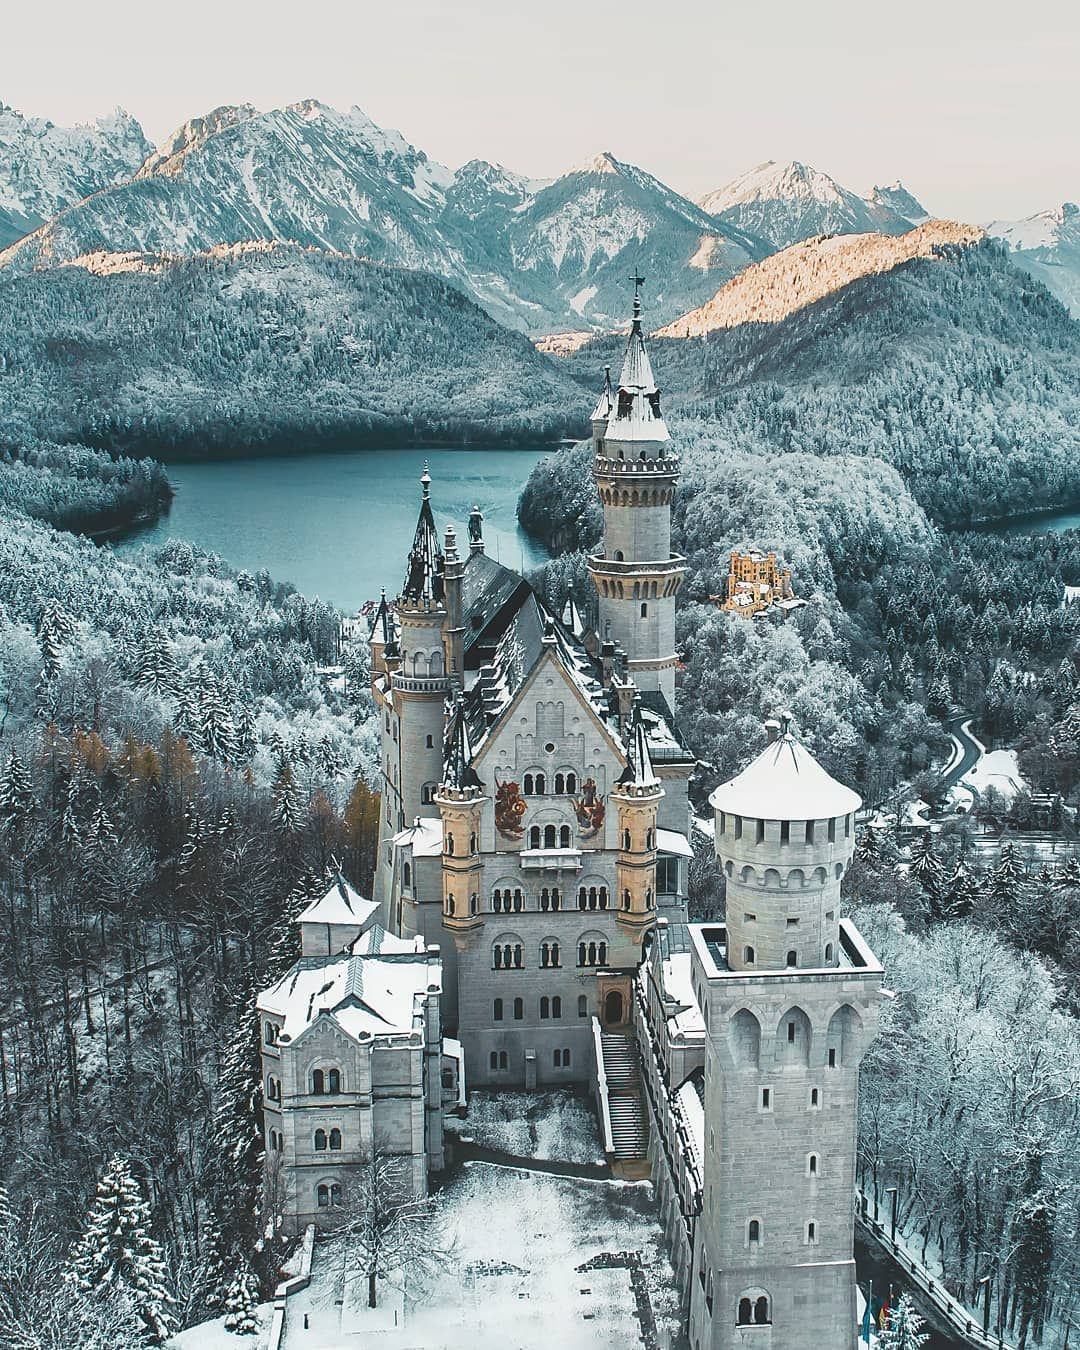 Today In The Morning Some Snow Covered The Castle Allgau Bavaria Visitbavaria Castle Folkscenery Germany Castles Neuschwanstein Castle Castles To Visit